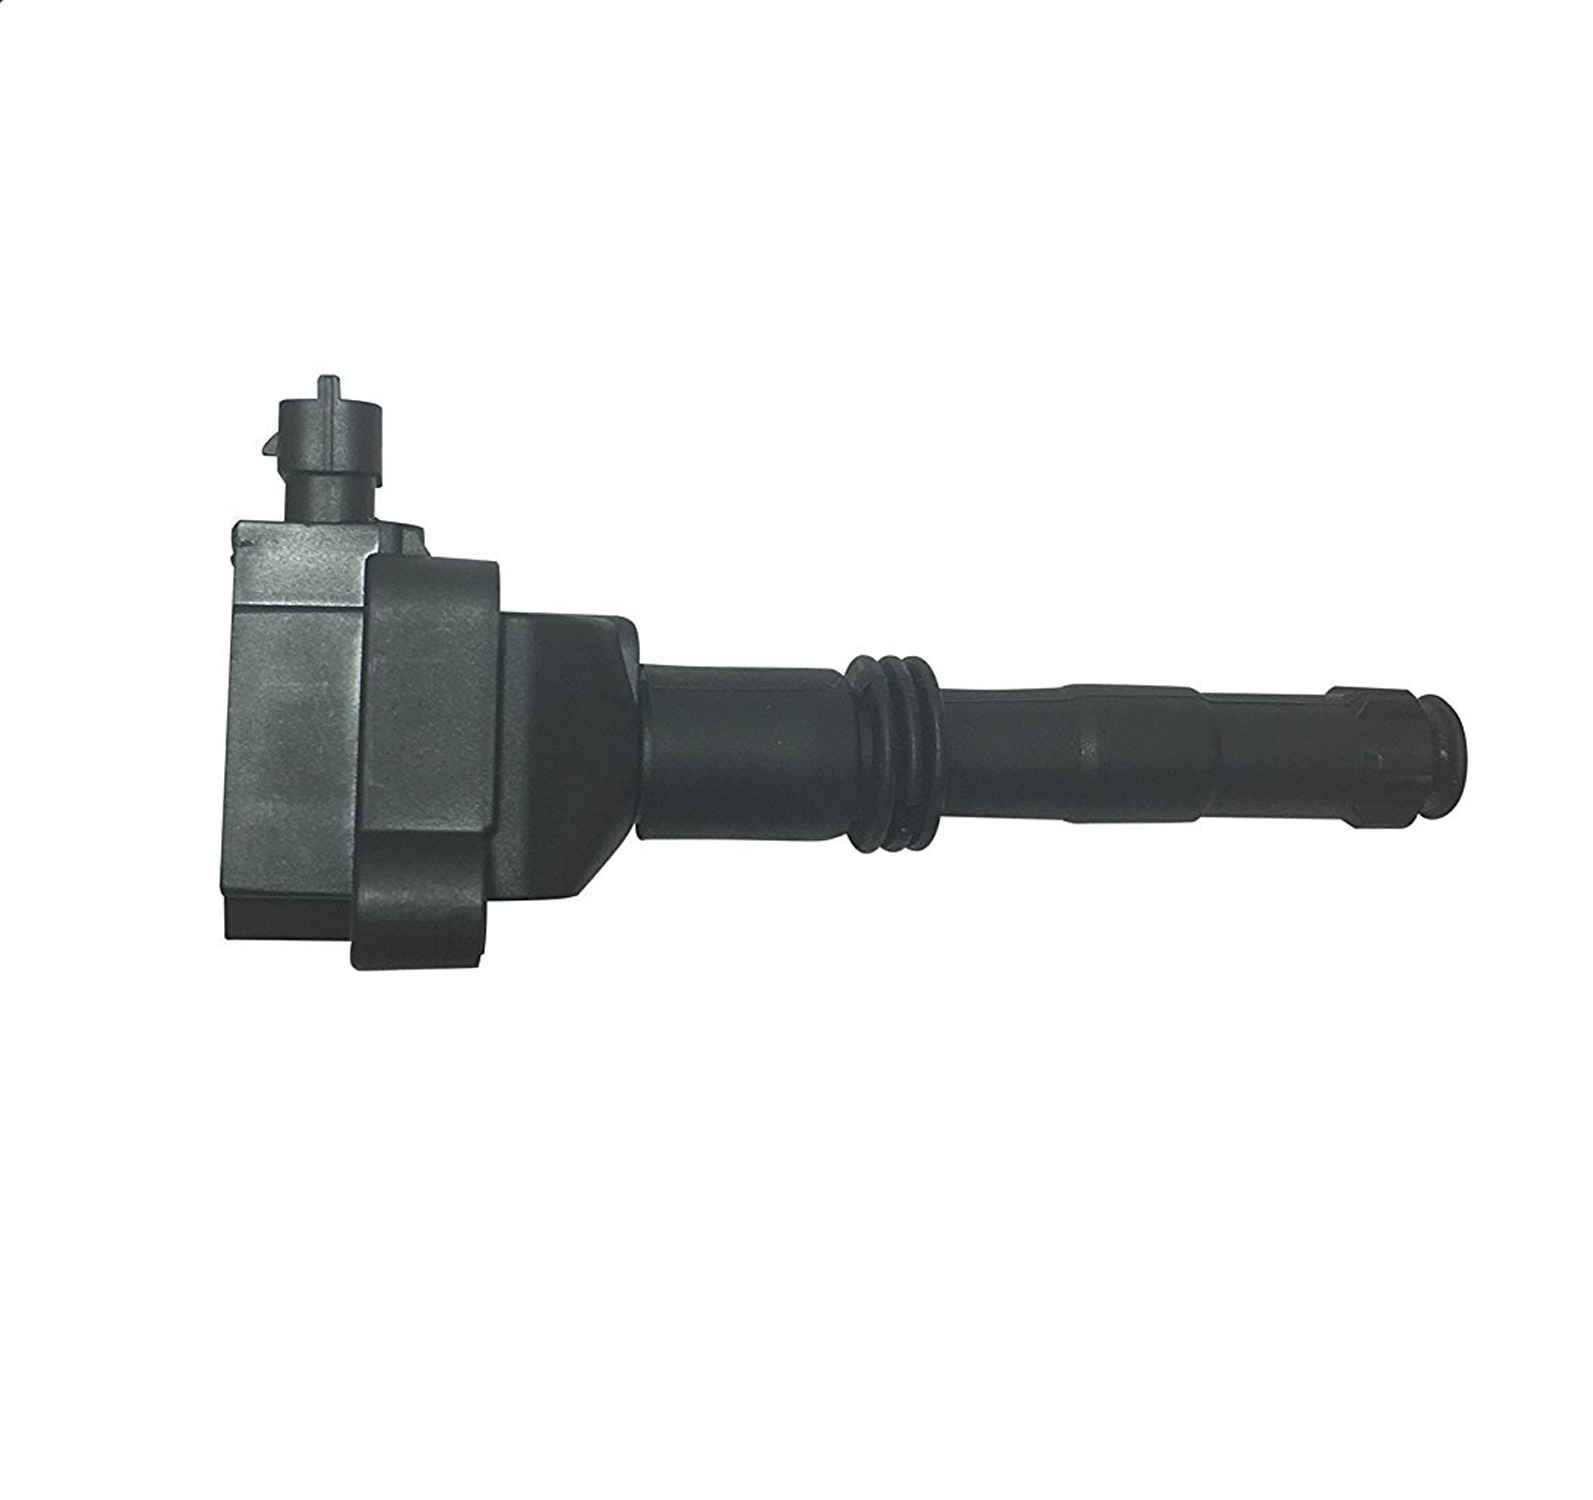 Ignition Coil Pack- Replaces Porsche# 99760210700, 99660210200, 99660210101 - 911 Carrera and Boxster Image